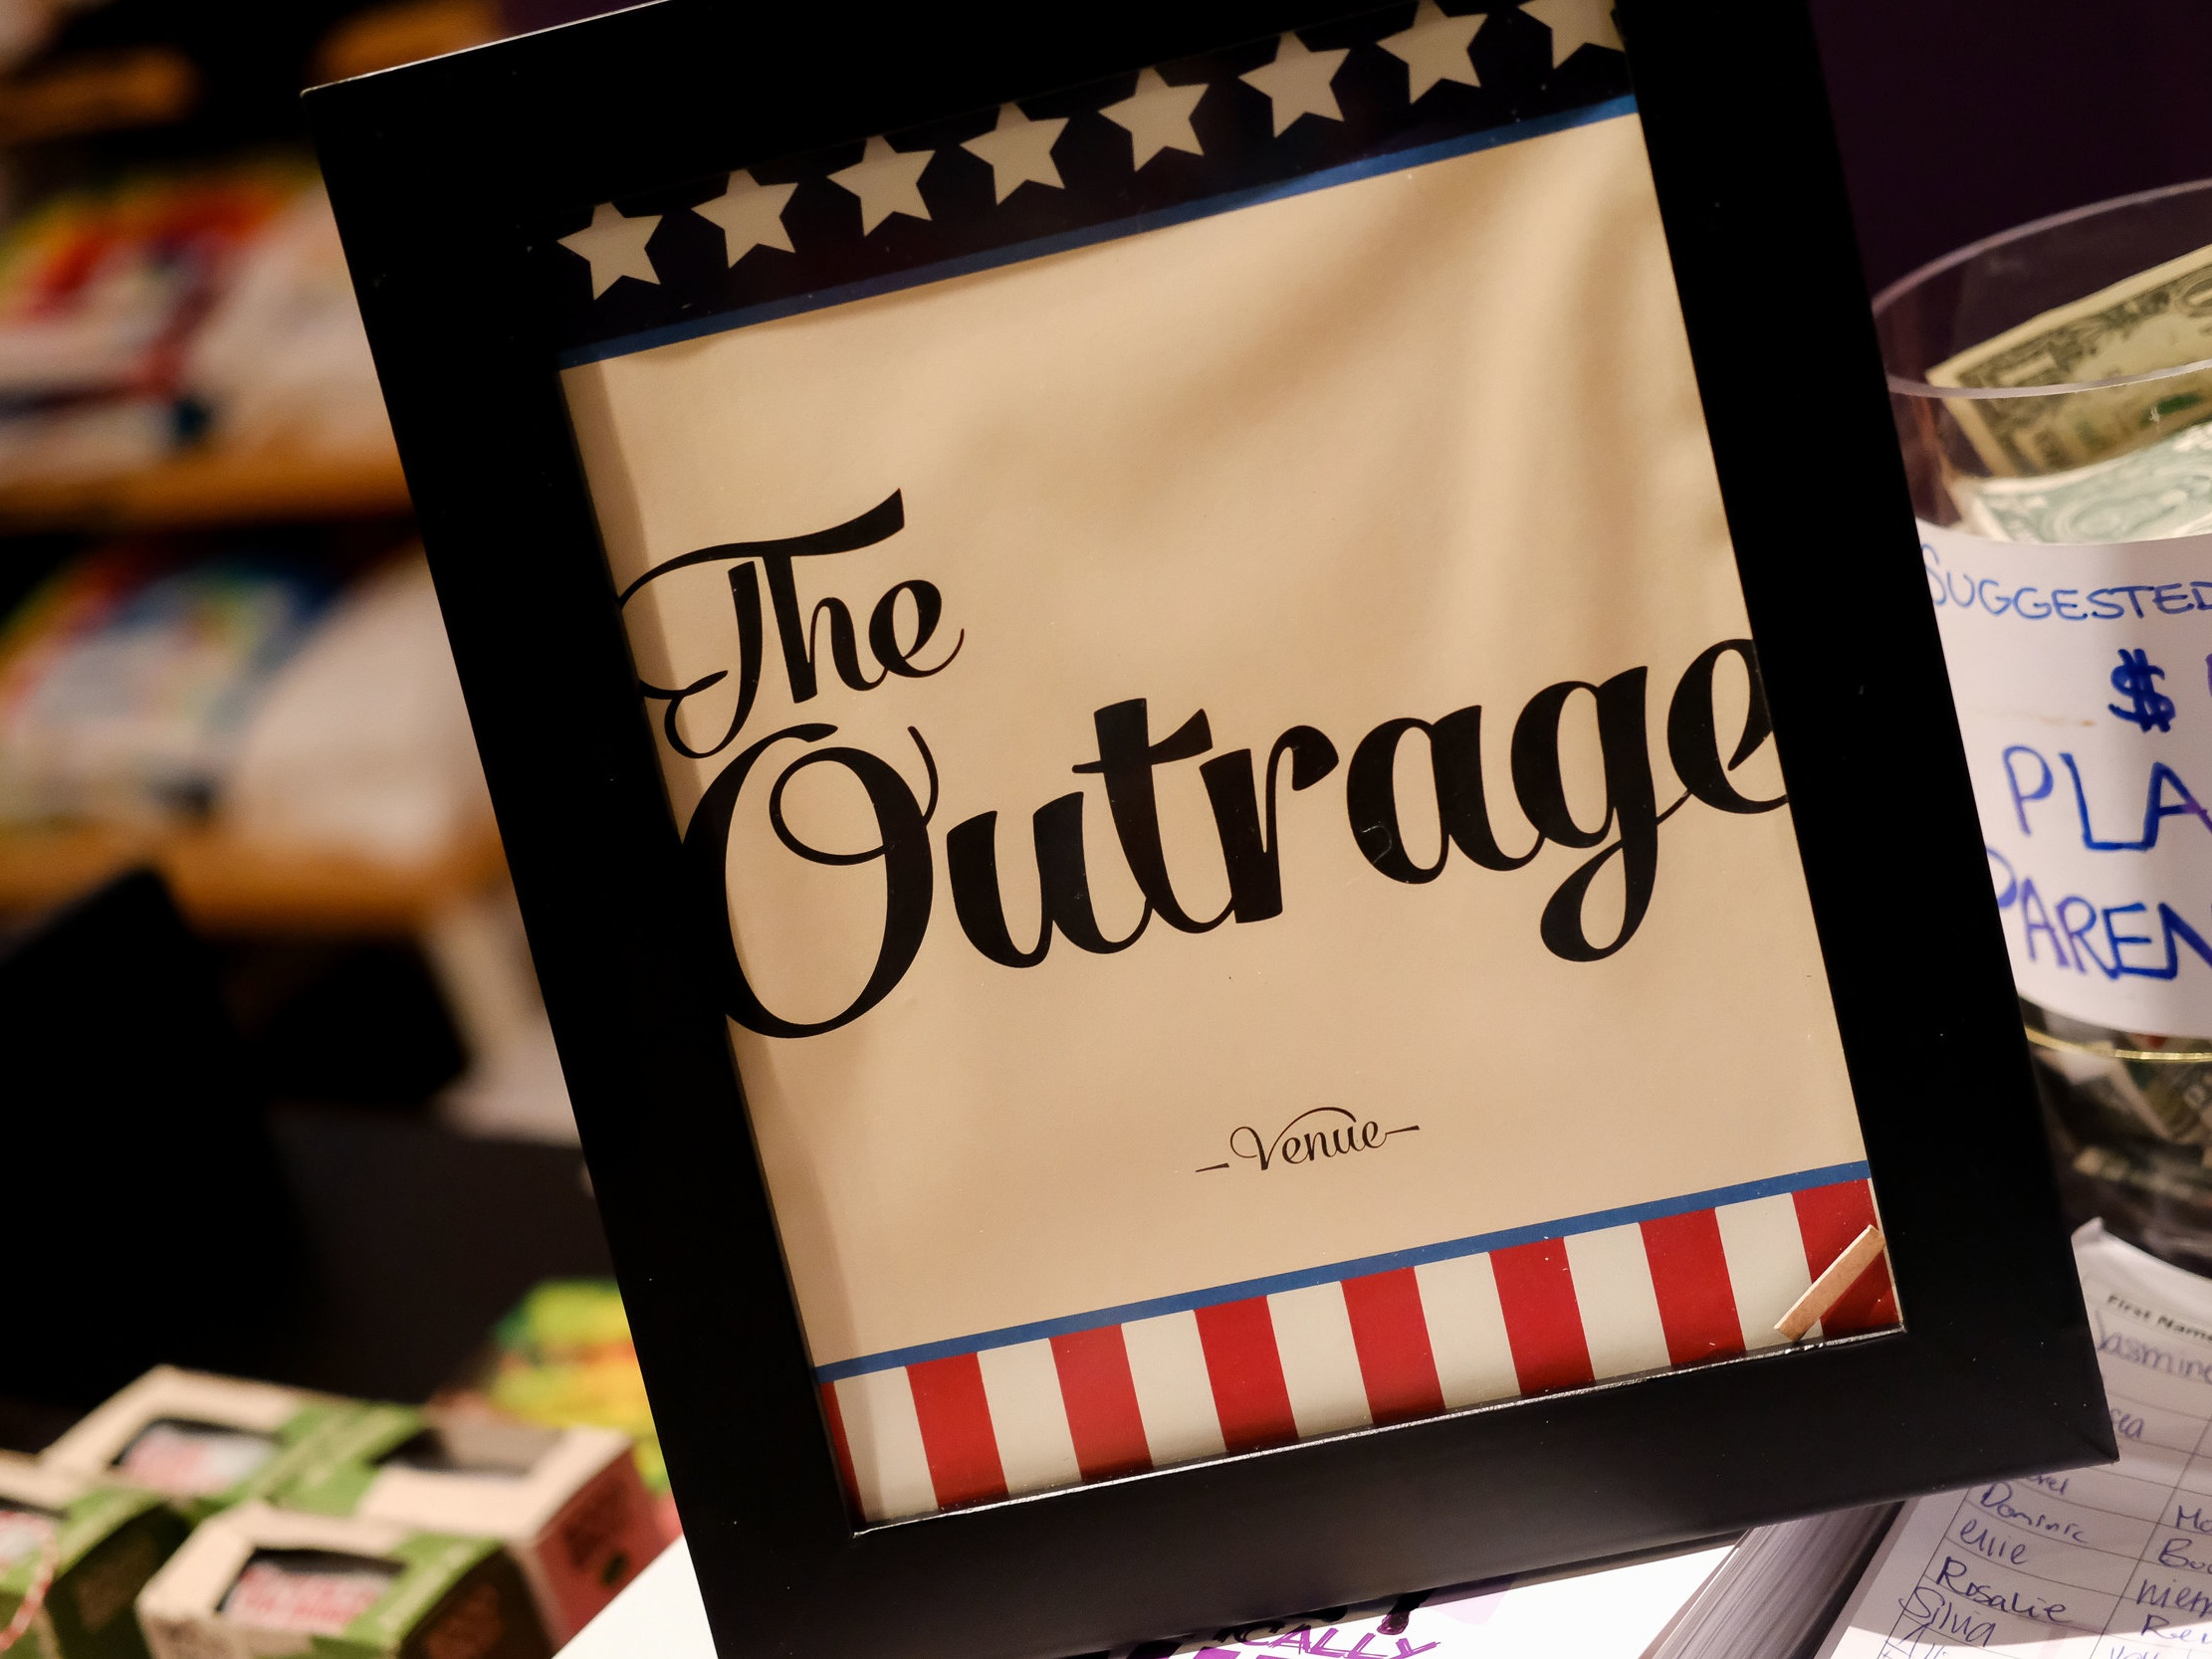 """District Bliss Event Photo, """"The Outrage"""" Venue sign"""